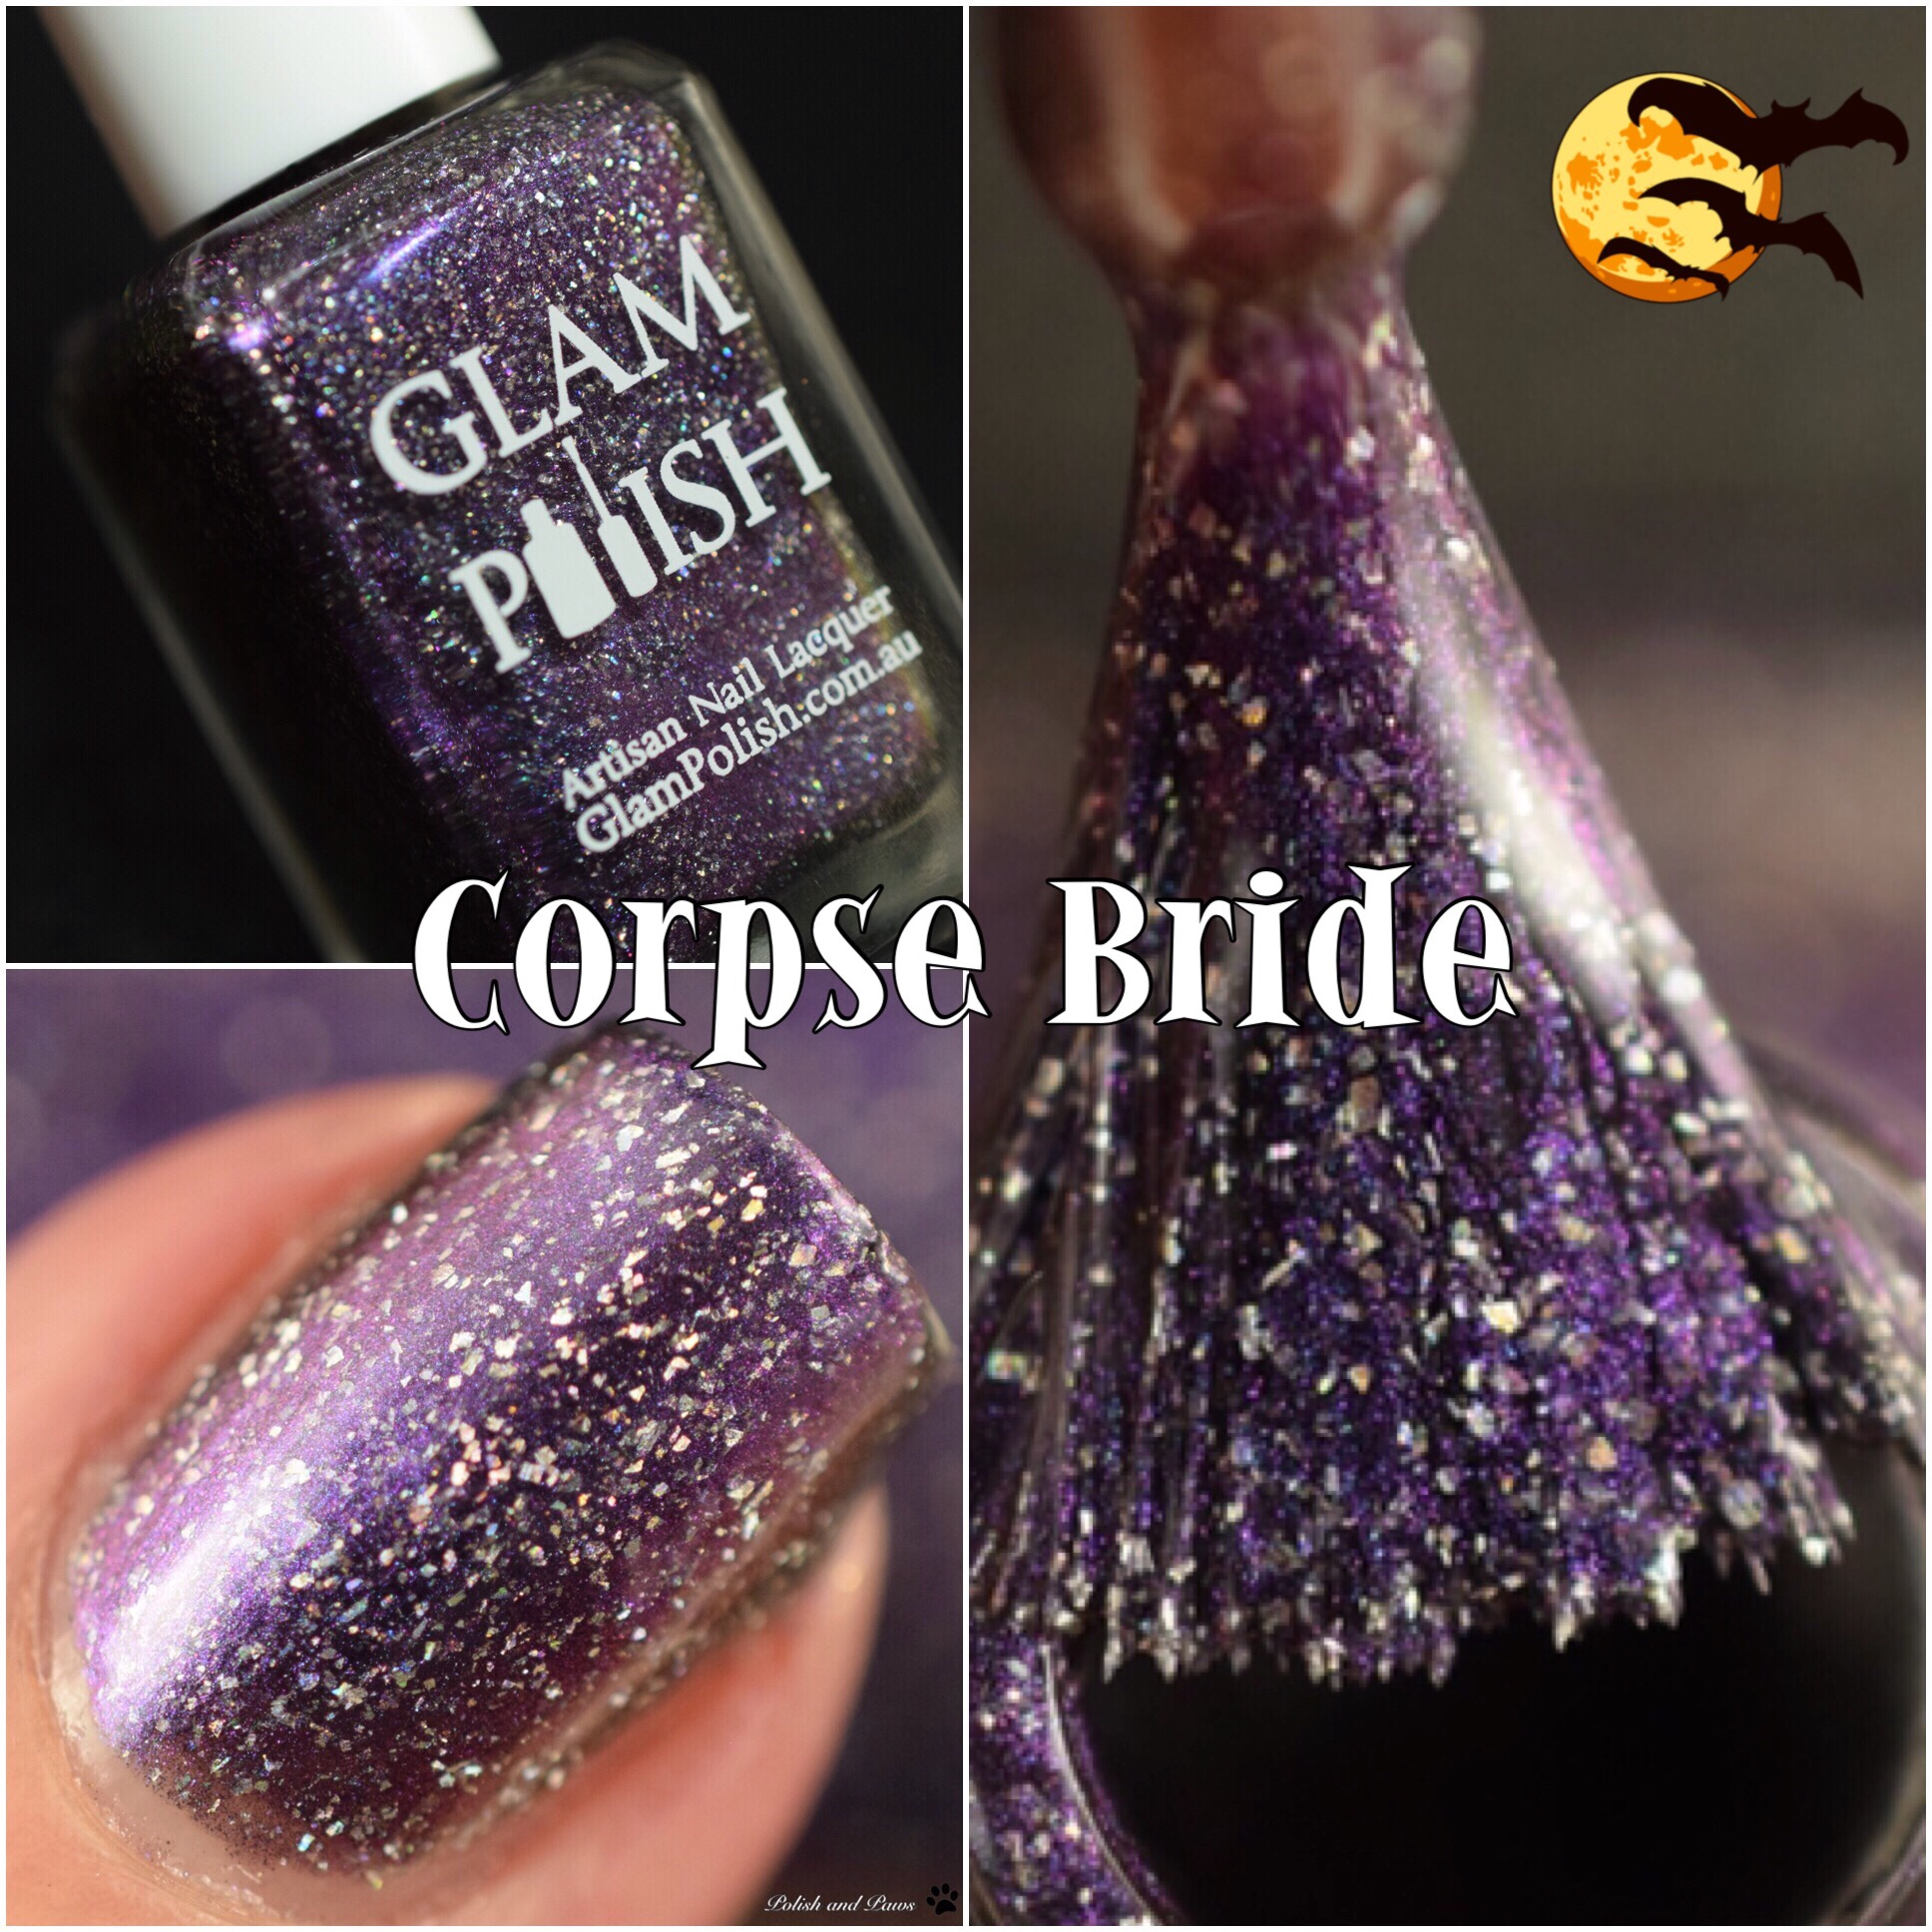 Glam Polish Corpse Bride